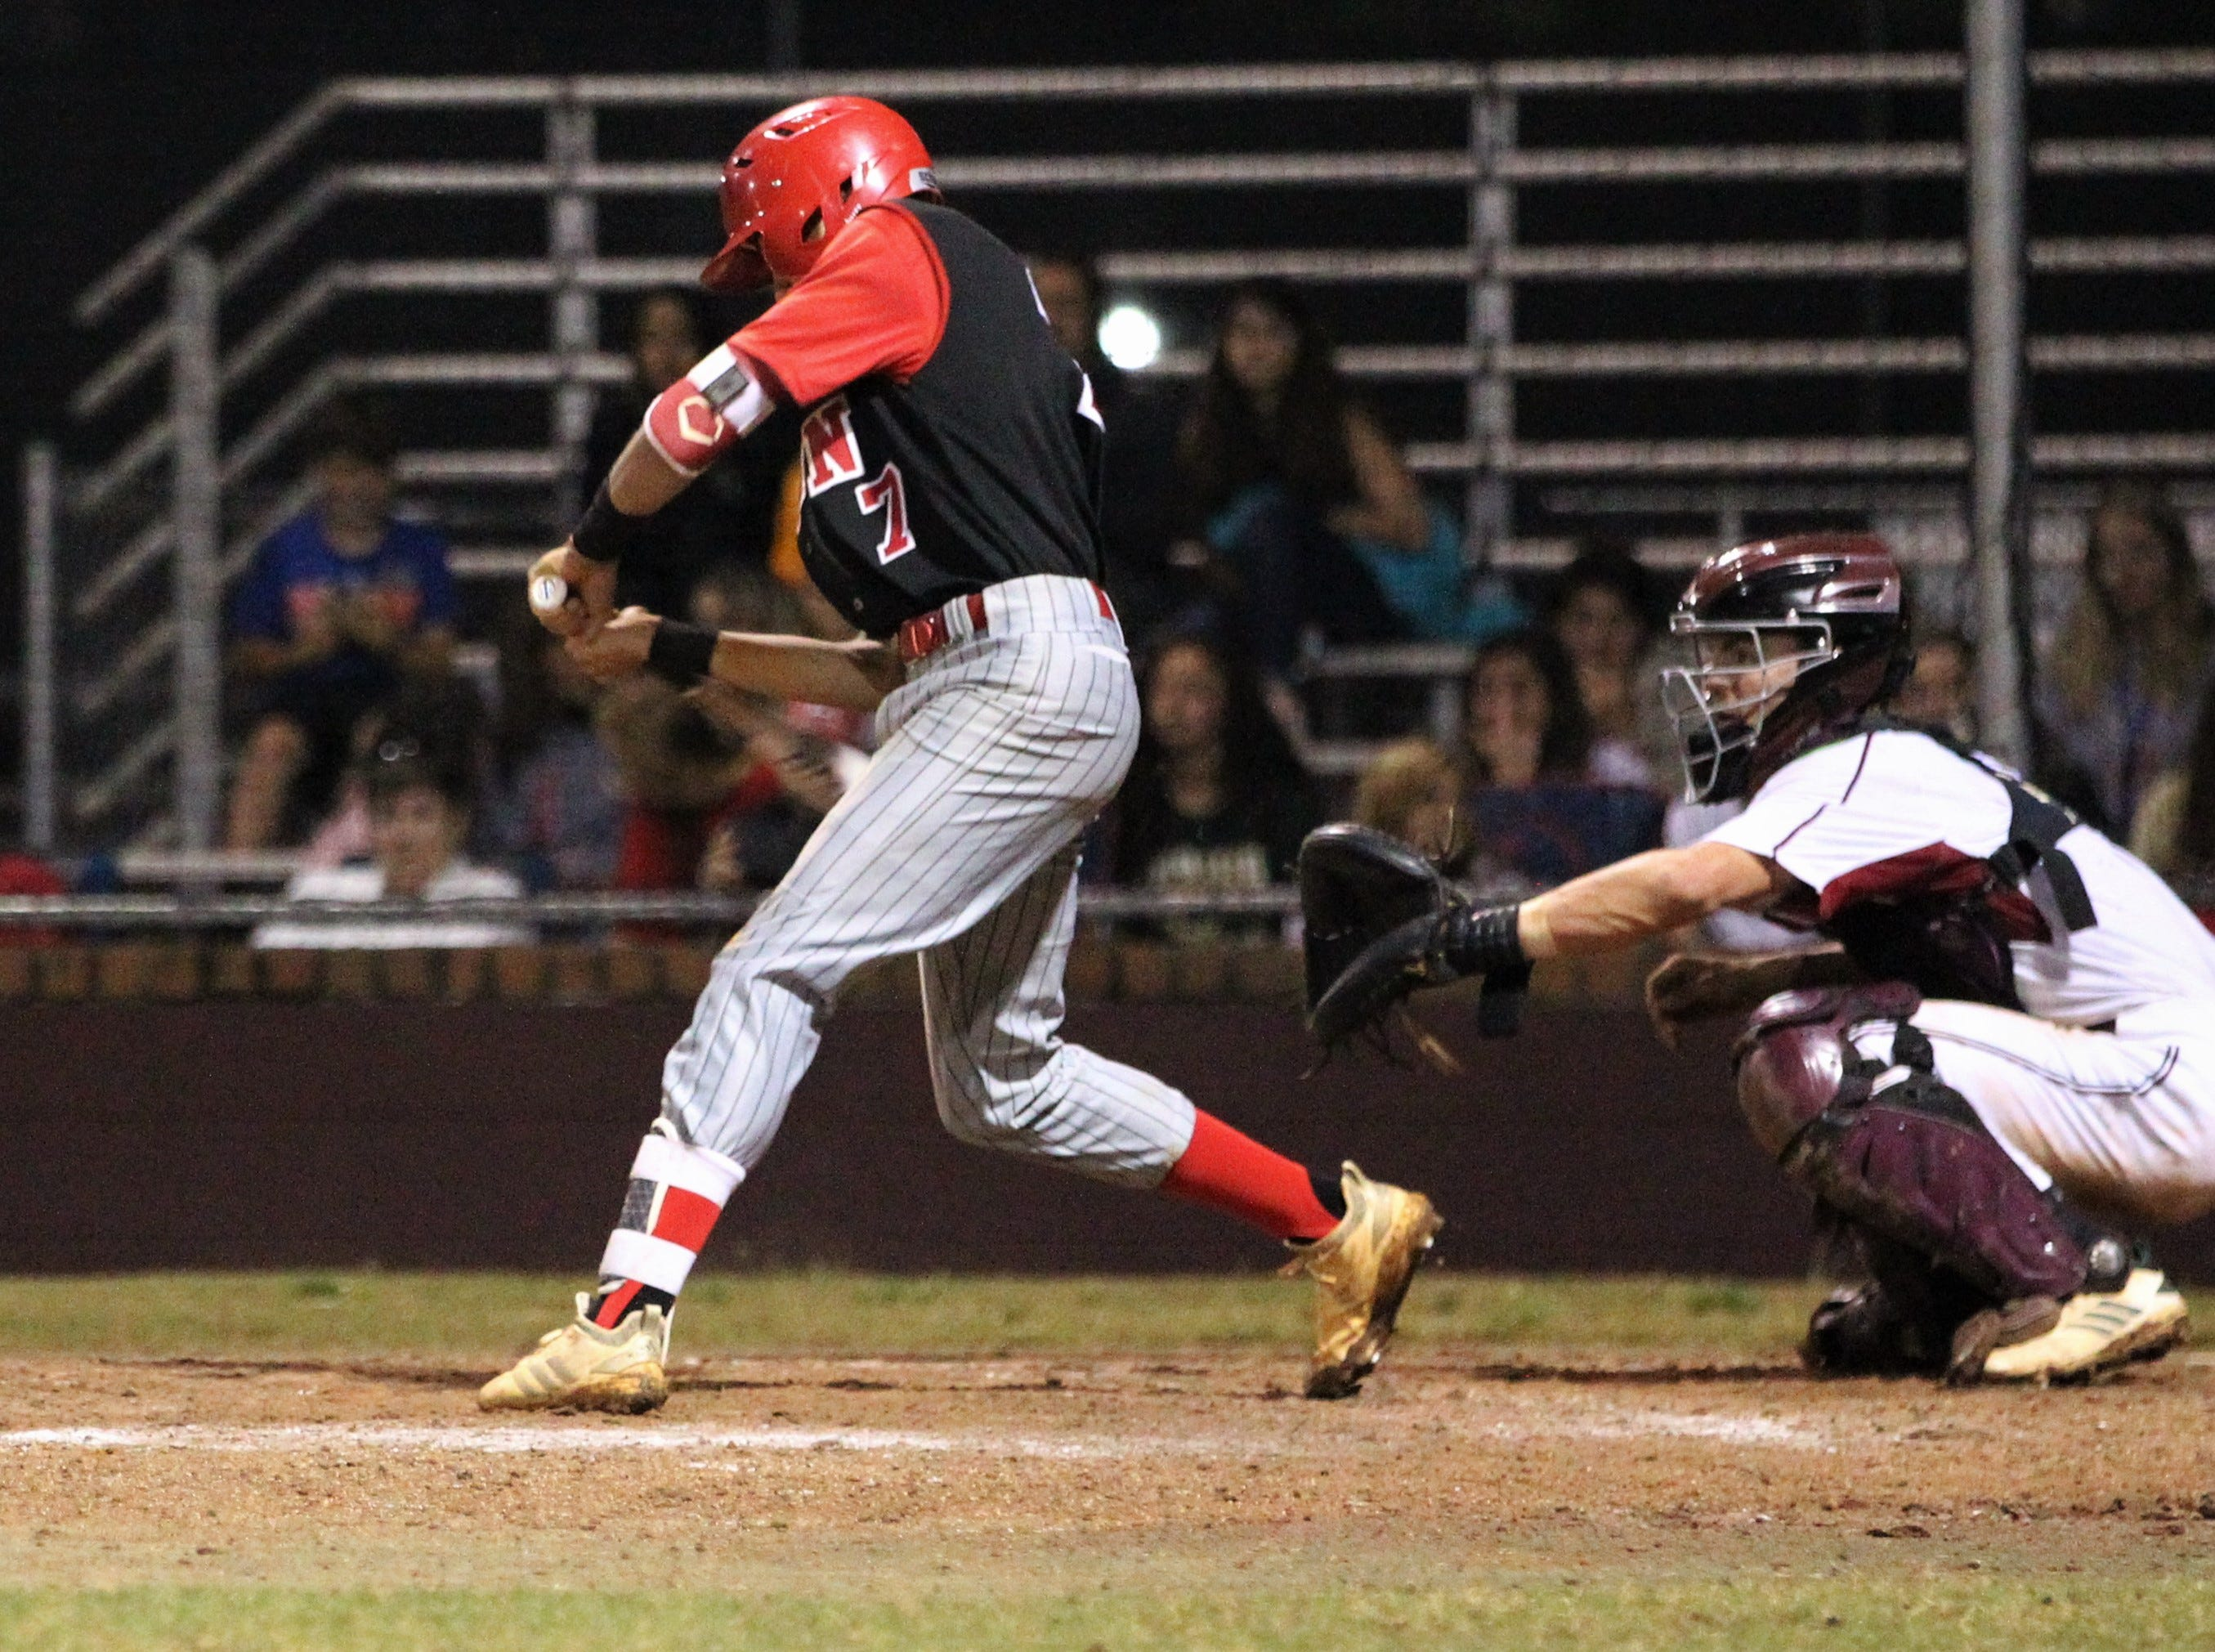 Leon senior True Fontenot bats as Chiles won an 11-6 home game against Leon on Friday, April 5, 2019, to force a season split. The Lions won 3-0 earlier in the week.